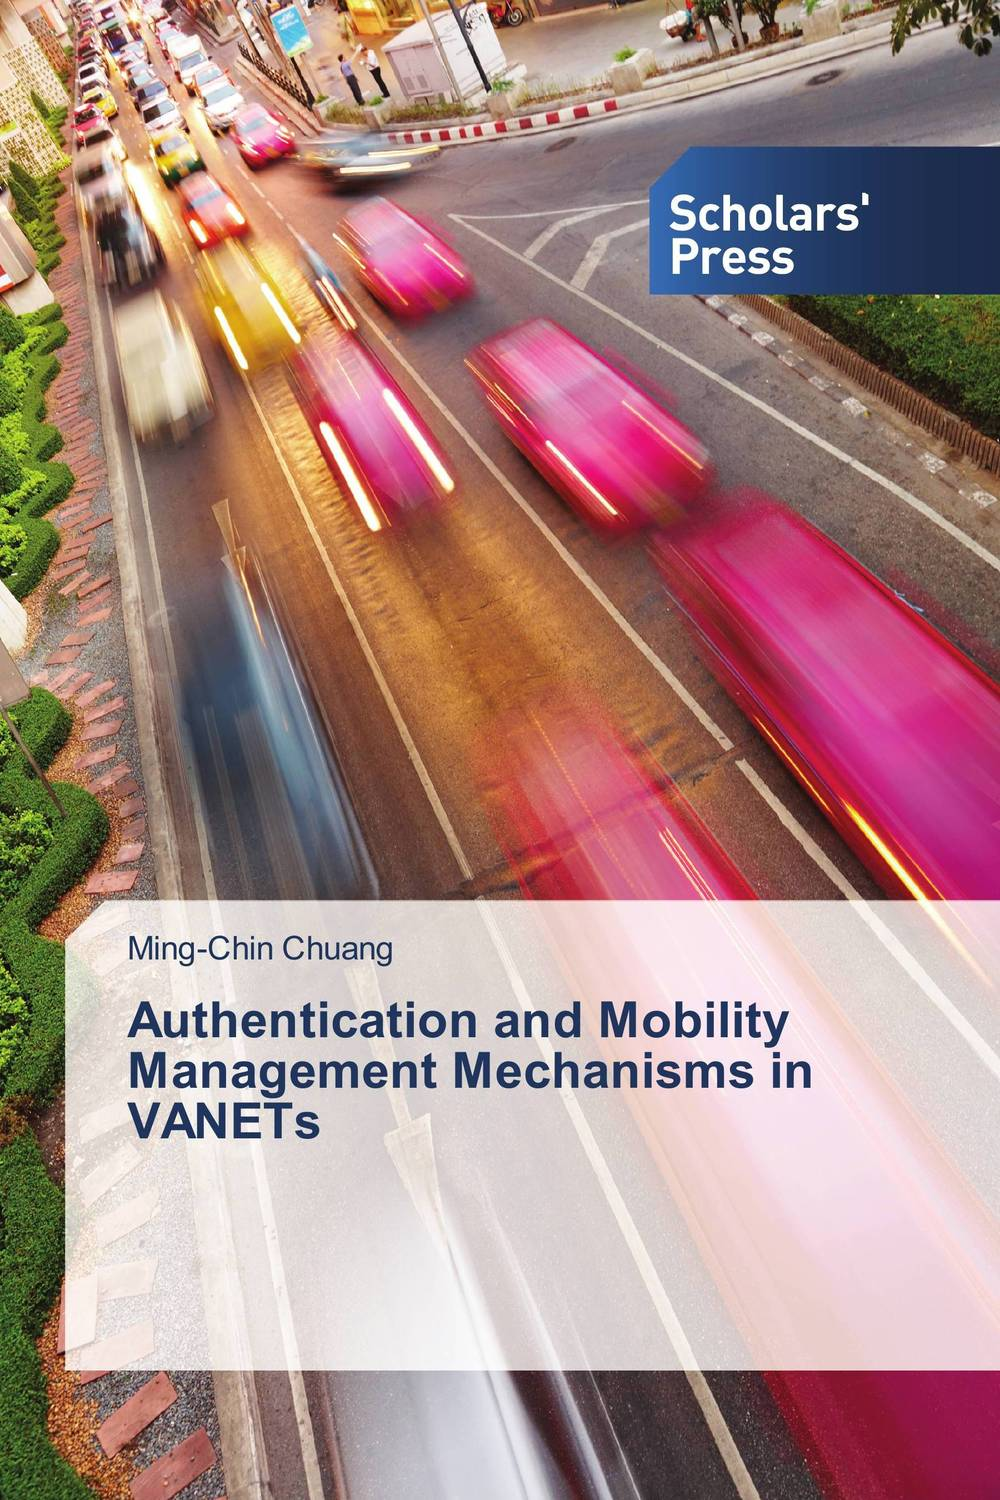 Authentication and Mobility Management Mechanisms in VANETs gurpreet kaur deepak grover and sumeet singh dental mobility and splinting